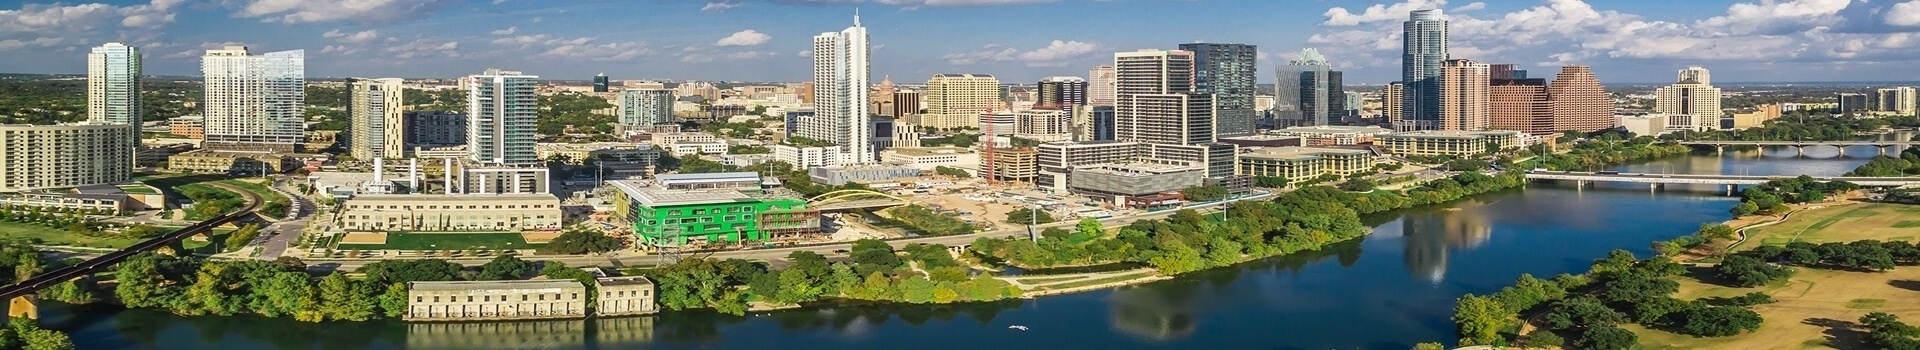 The Best 10 Real Estate Agents in San Antonio TX